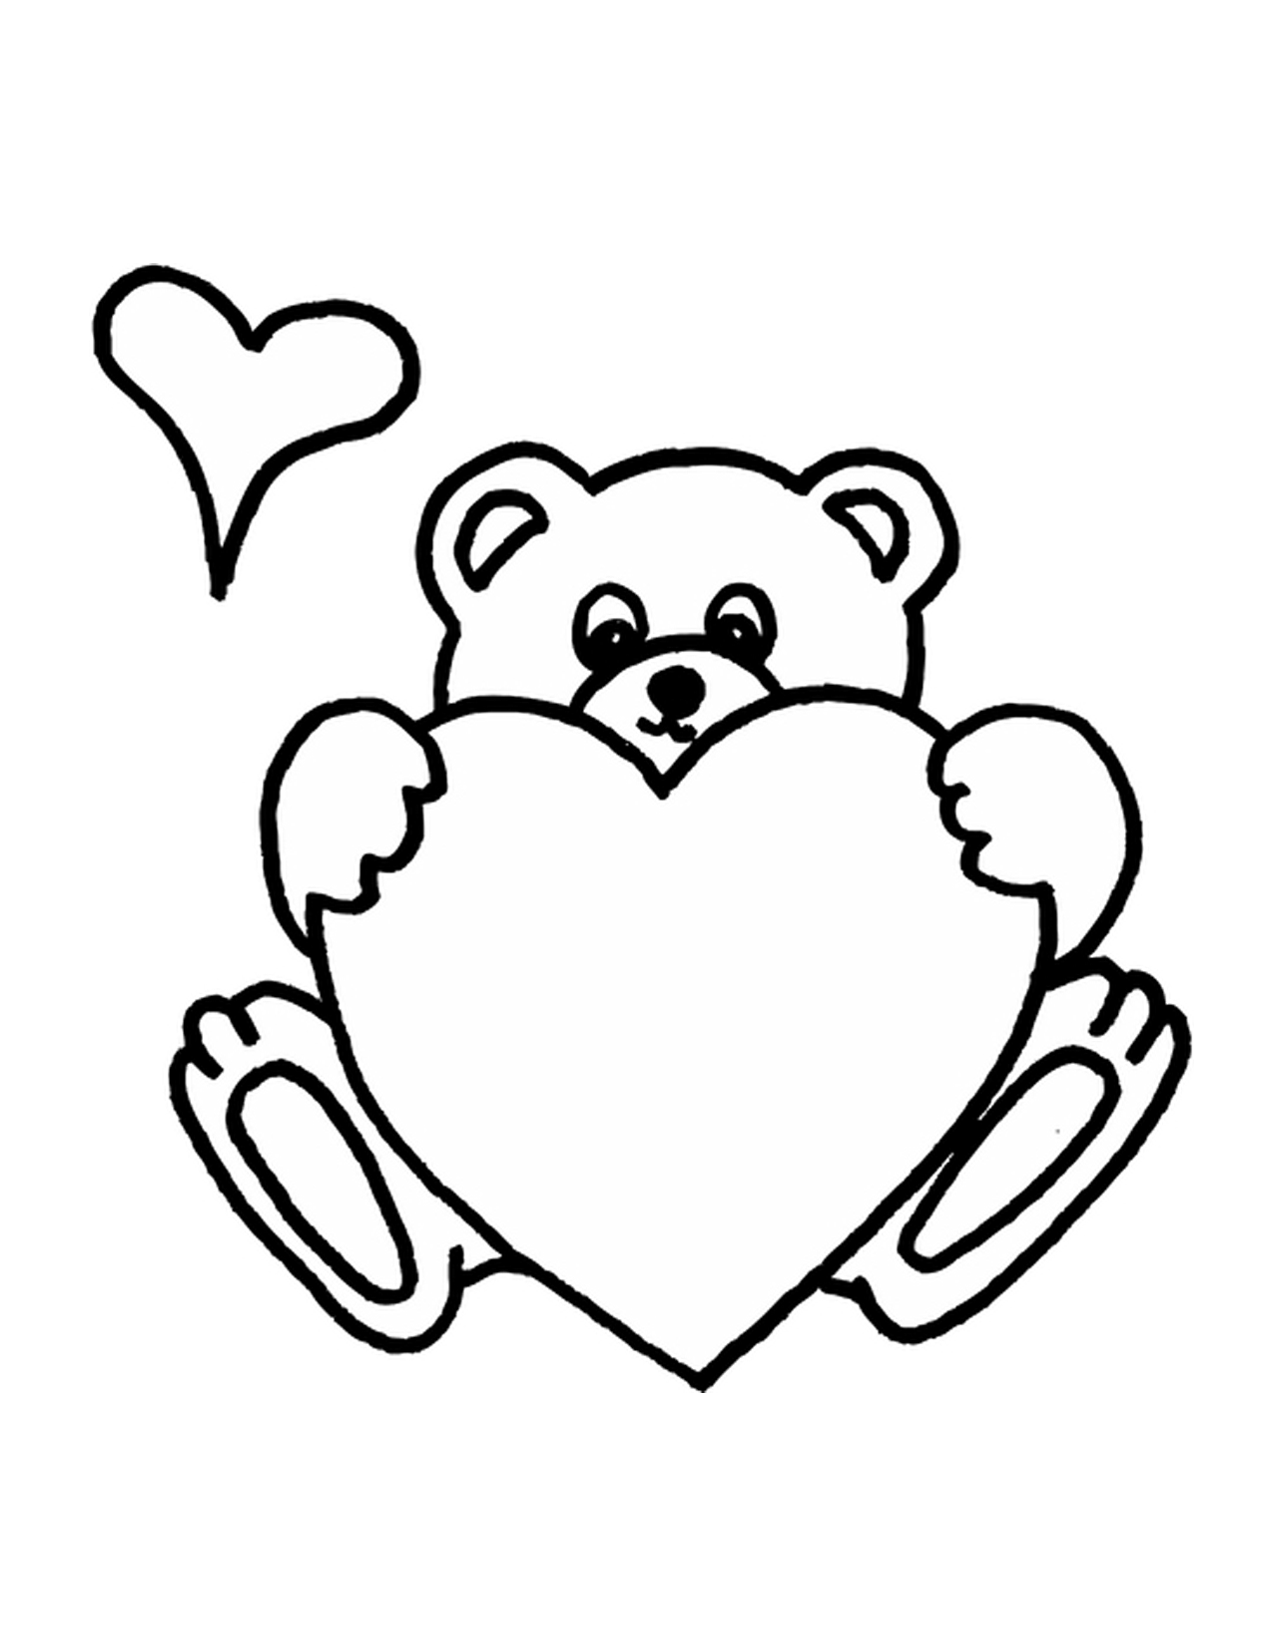 ba teddy bear coloring pages teddy bear coloring sheets teddy